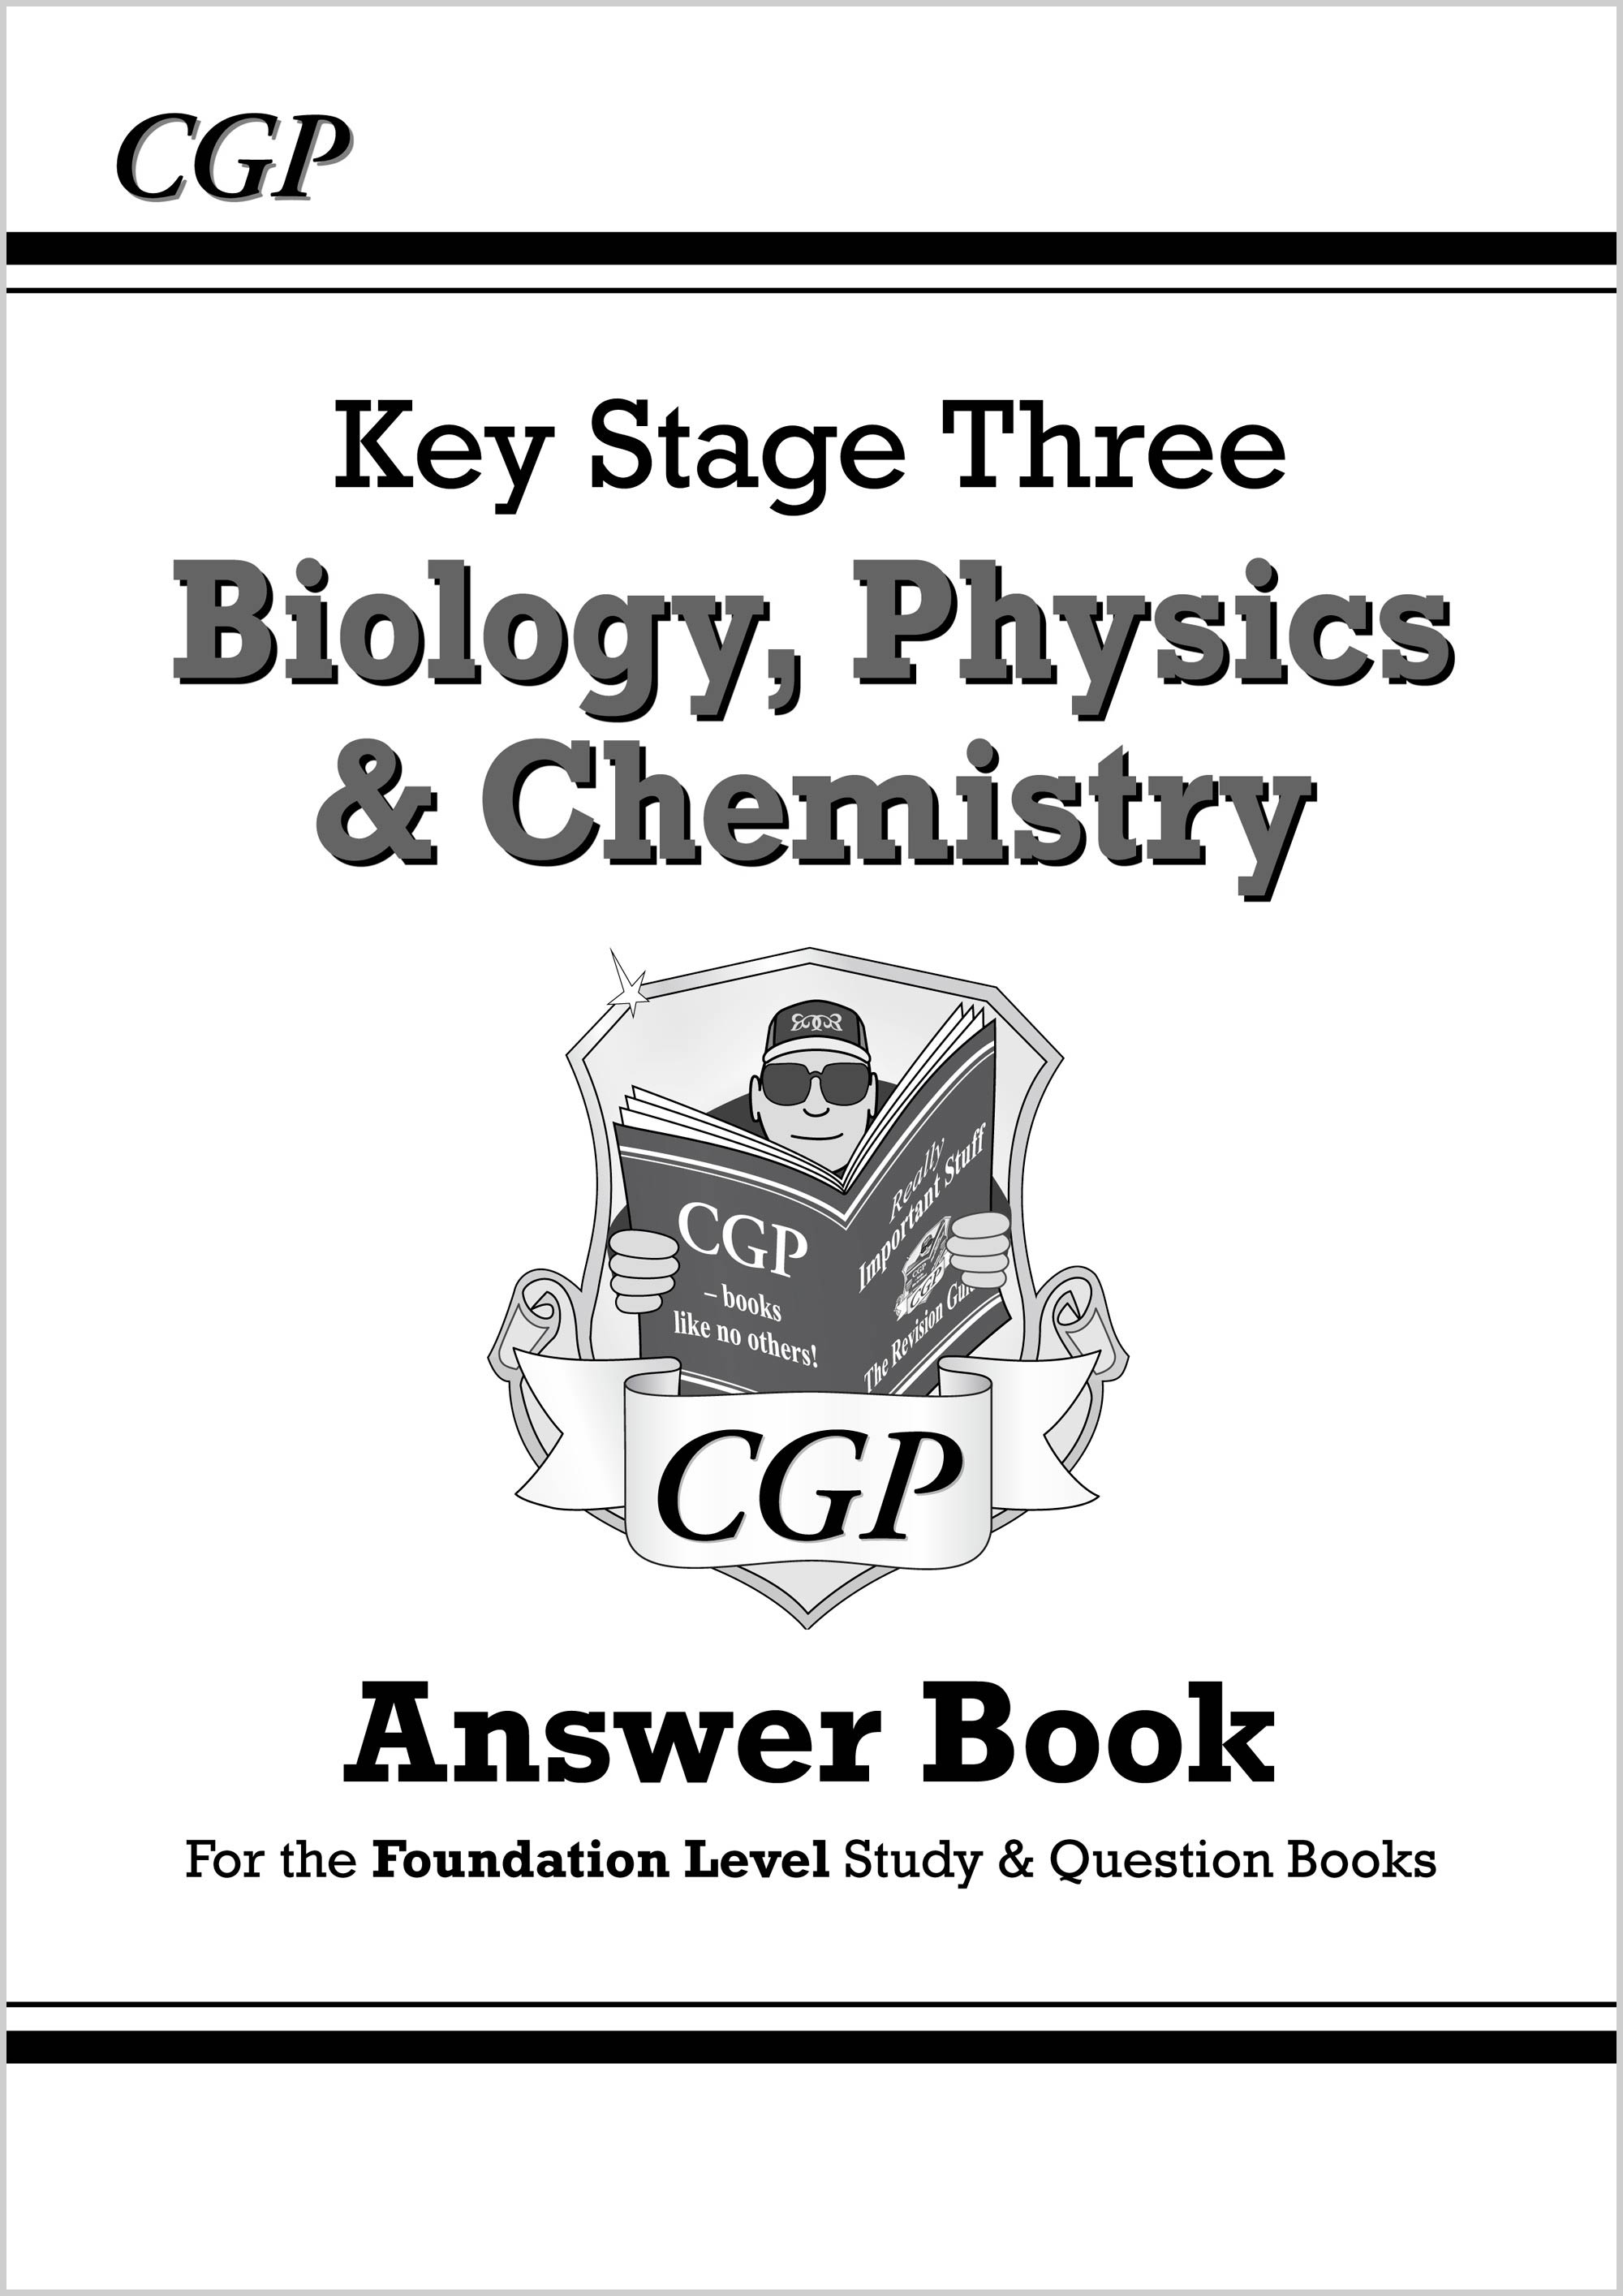 SFQA32 - KS3 Science Answers for Study & Question Books (Bio/Chem/Phys) - Foundation